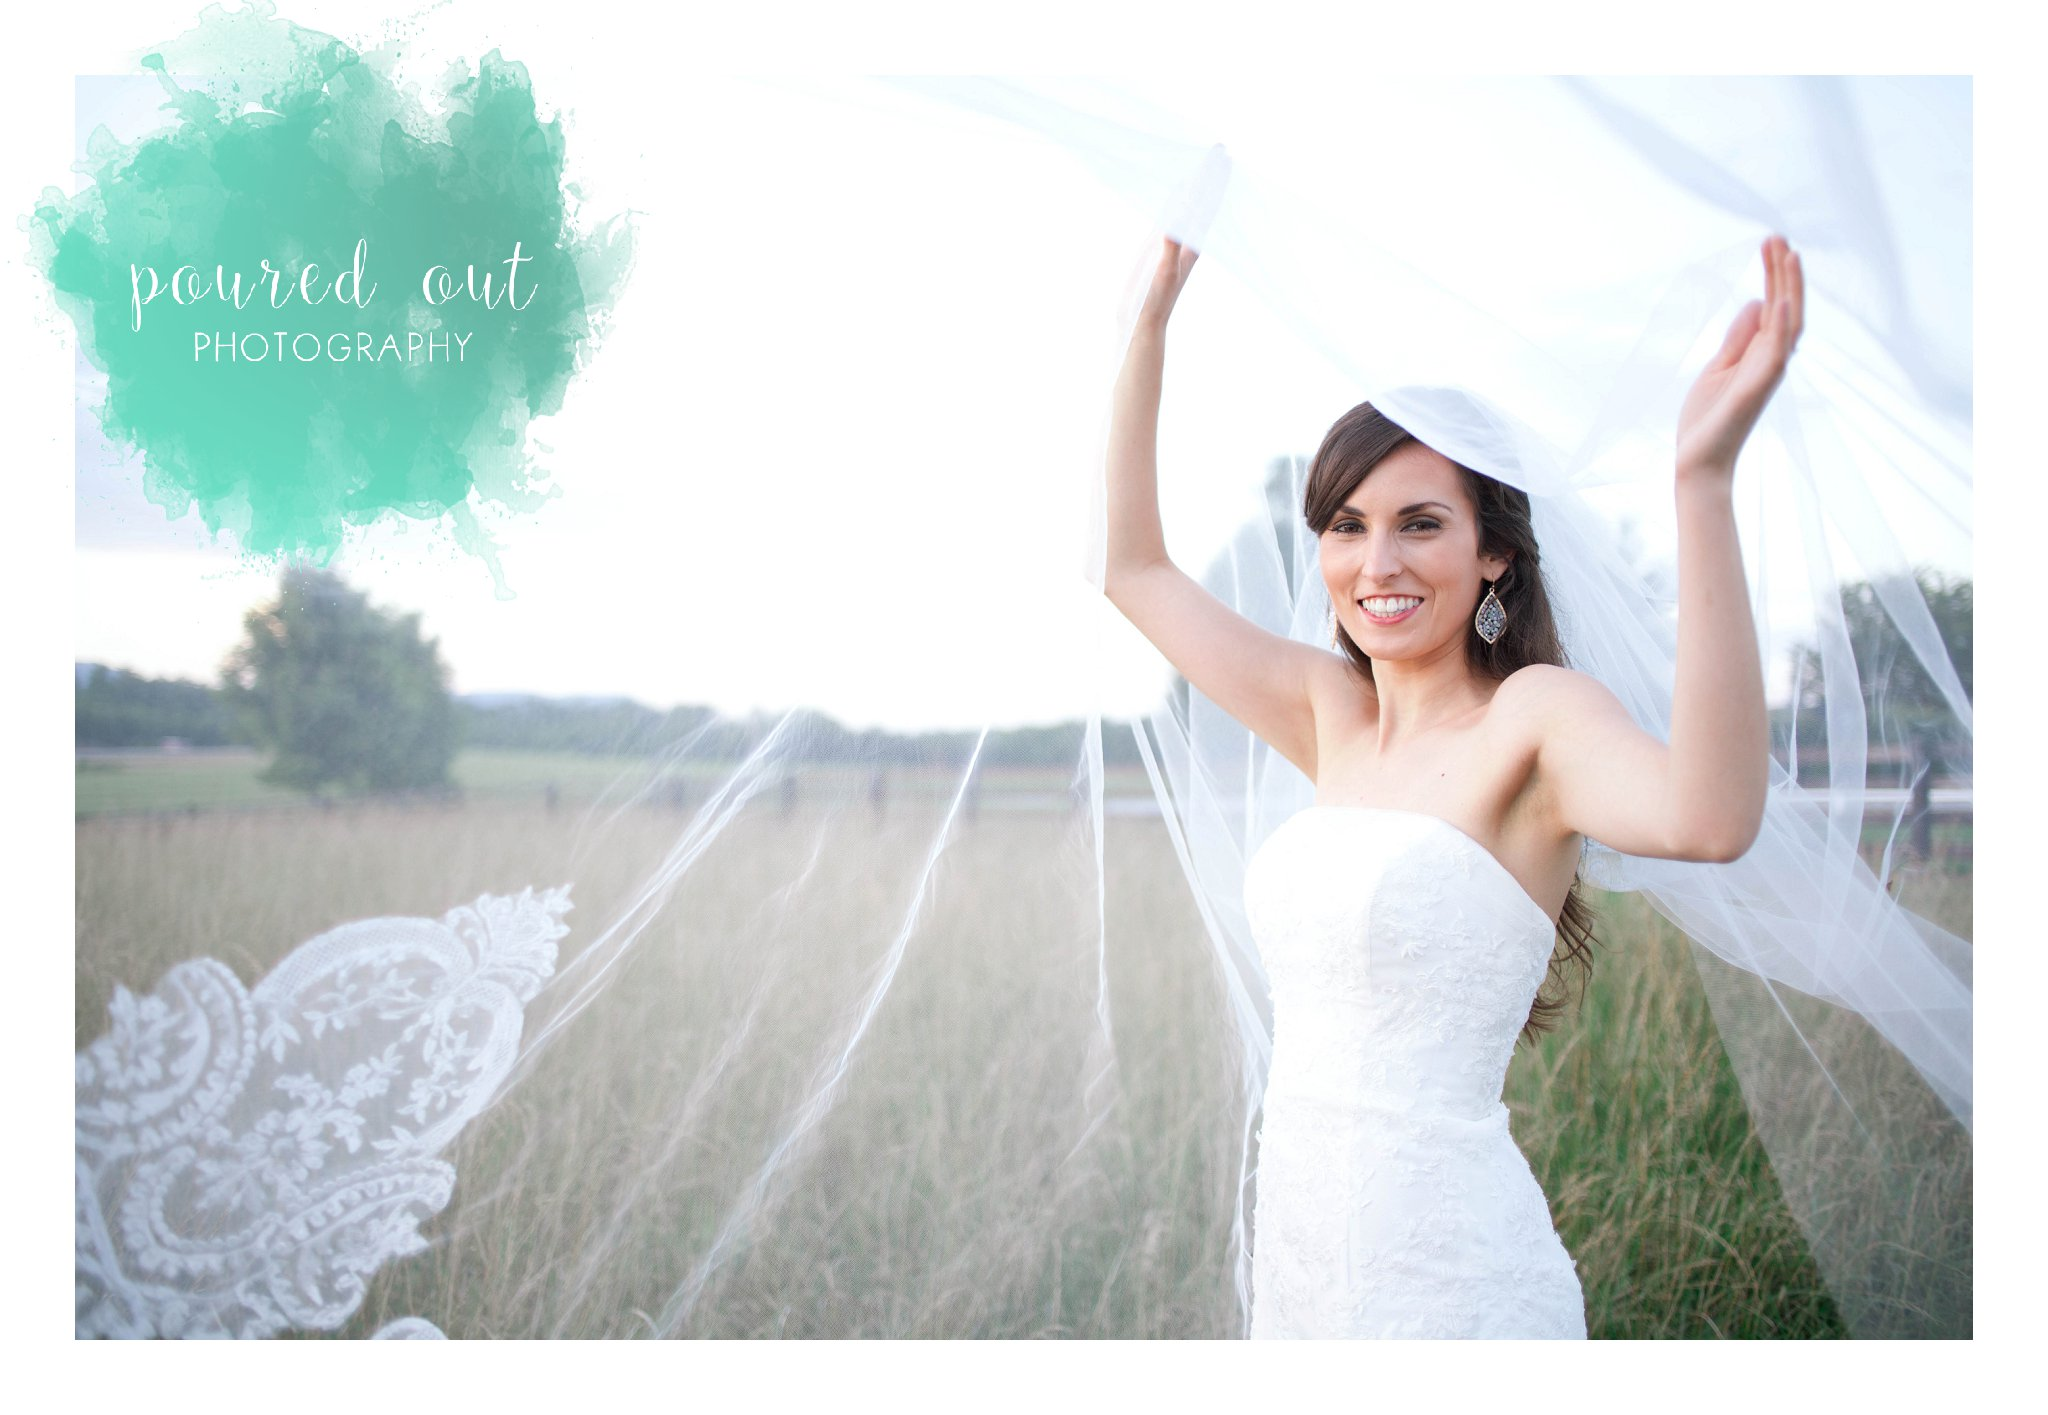 dani_bridal_poured_out_photography-262_WEB.jpg